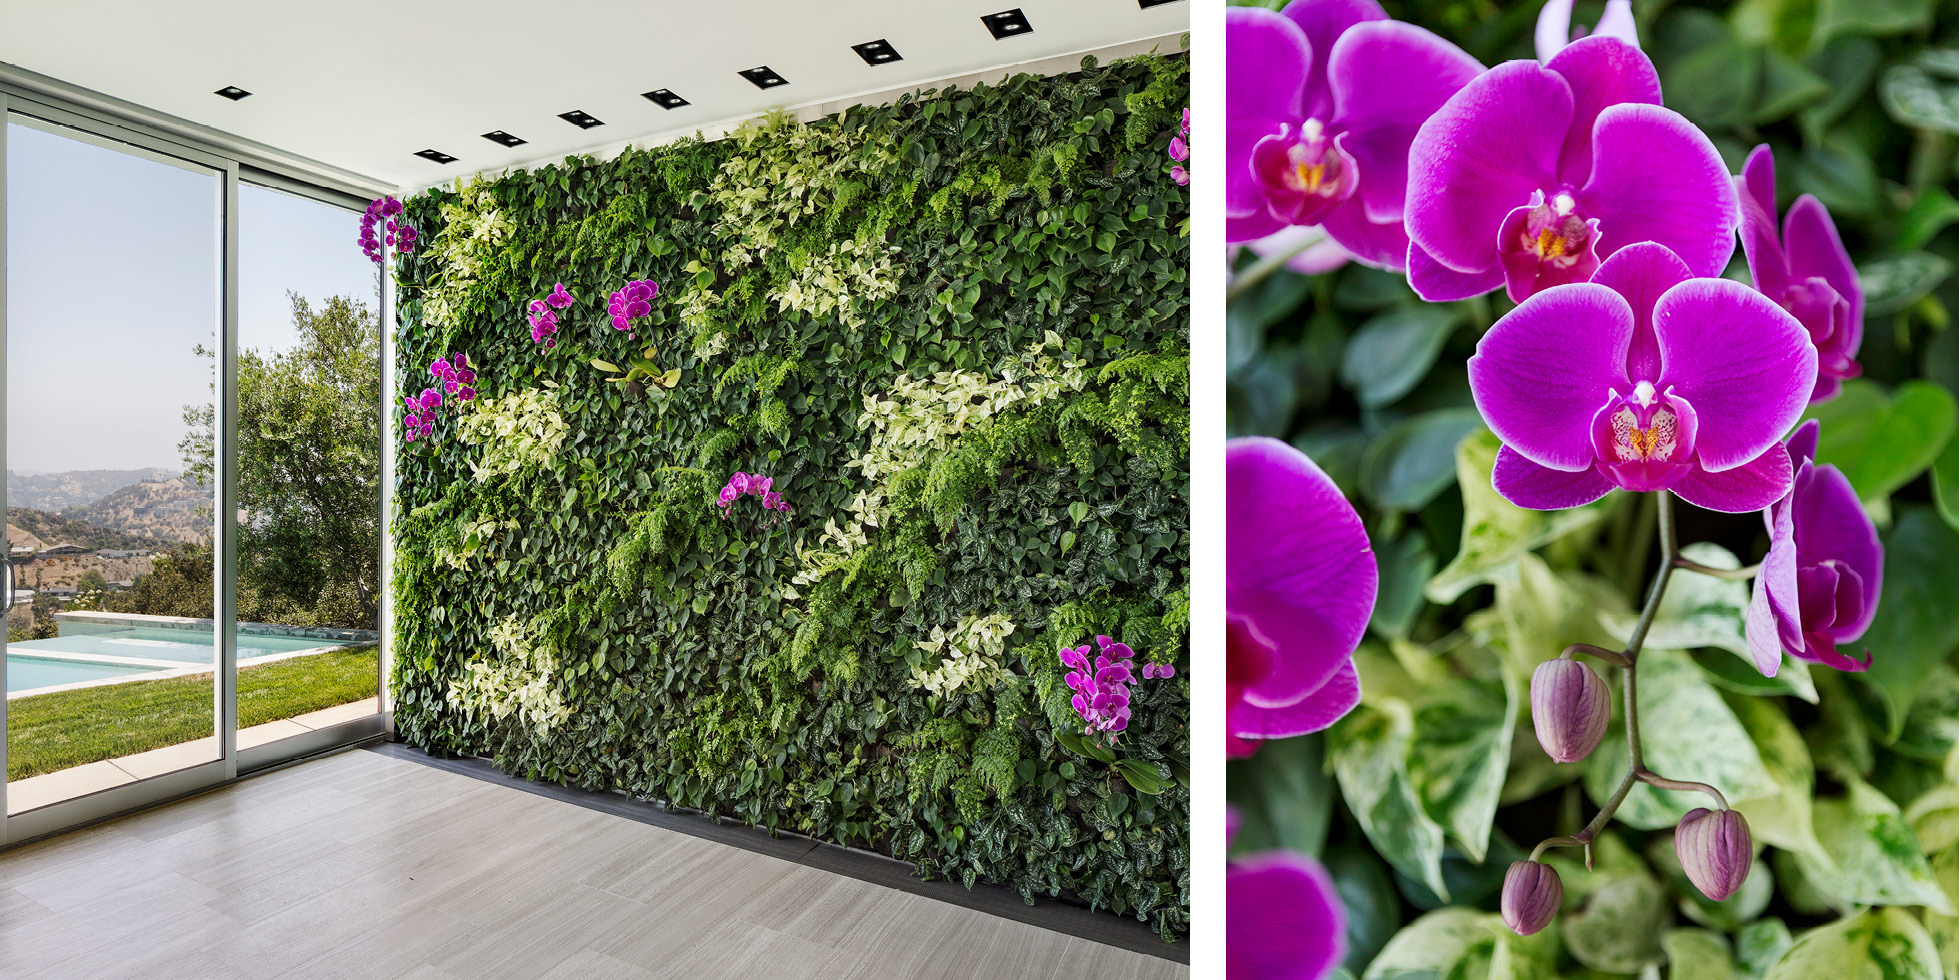 Skyline Residence Living Wall by Habitat Horticulture - View 2